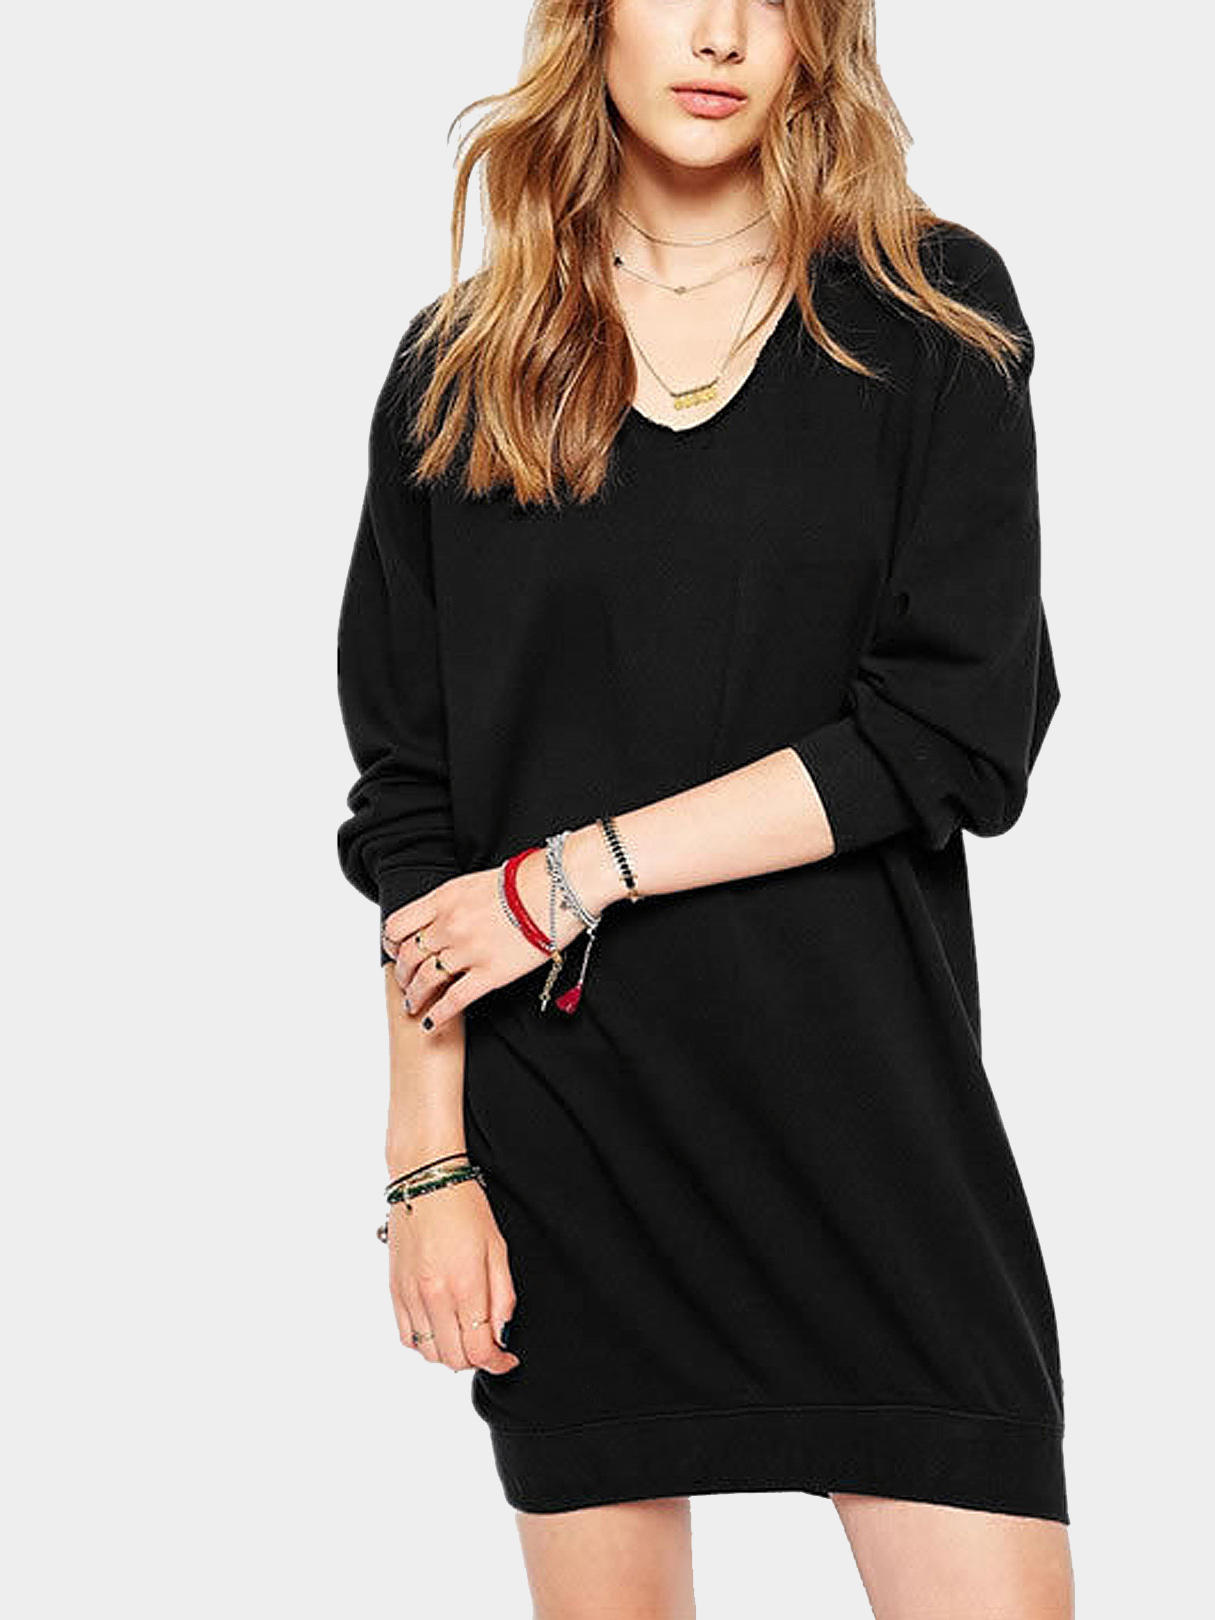 Long Sleeve V neck Sweater Dress